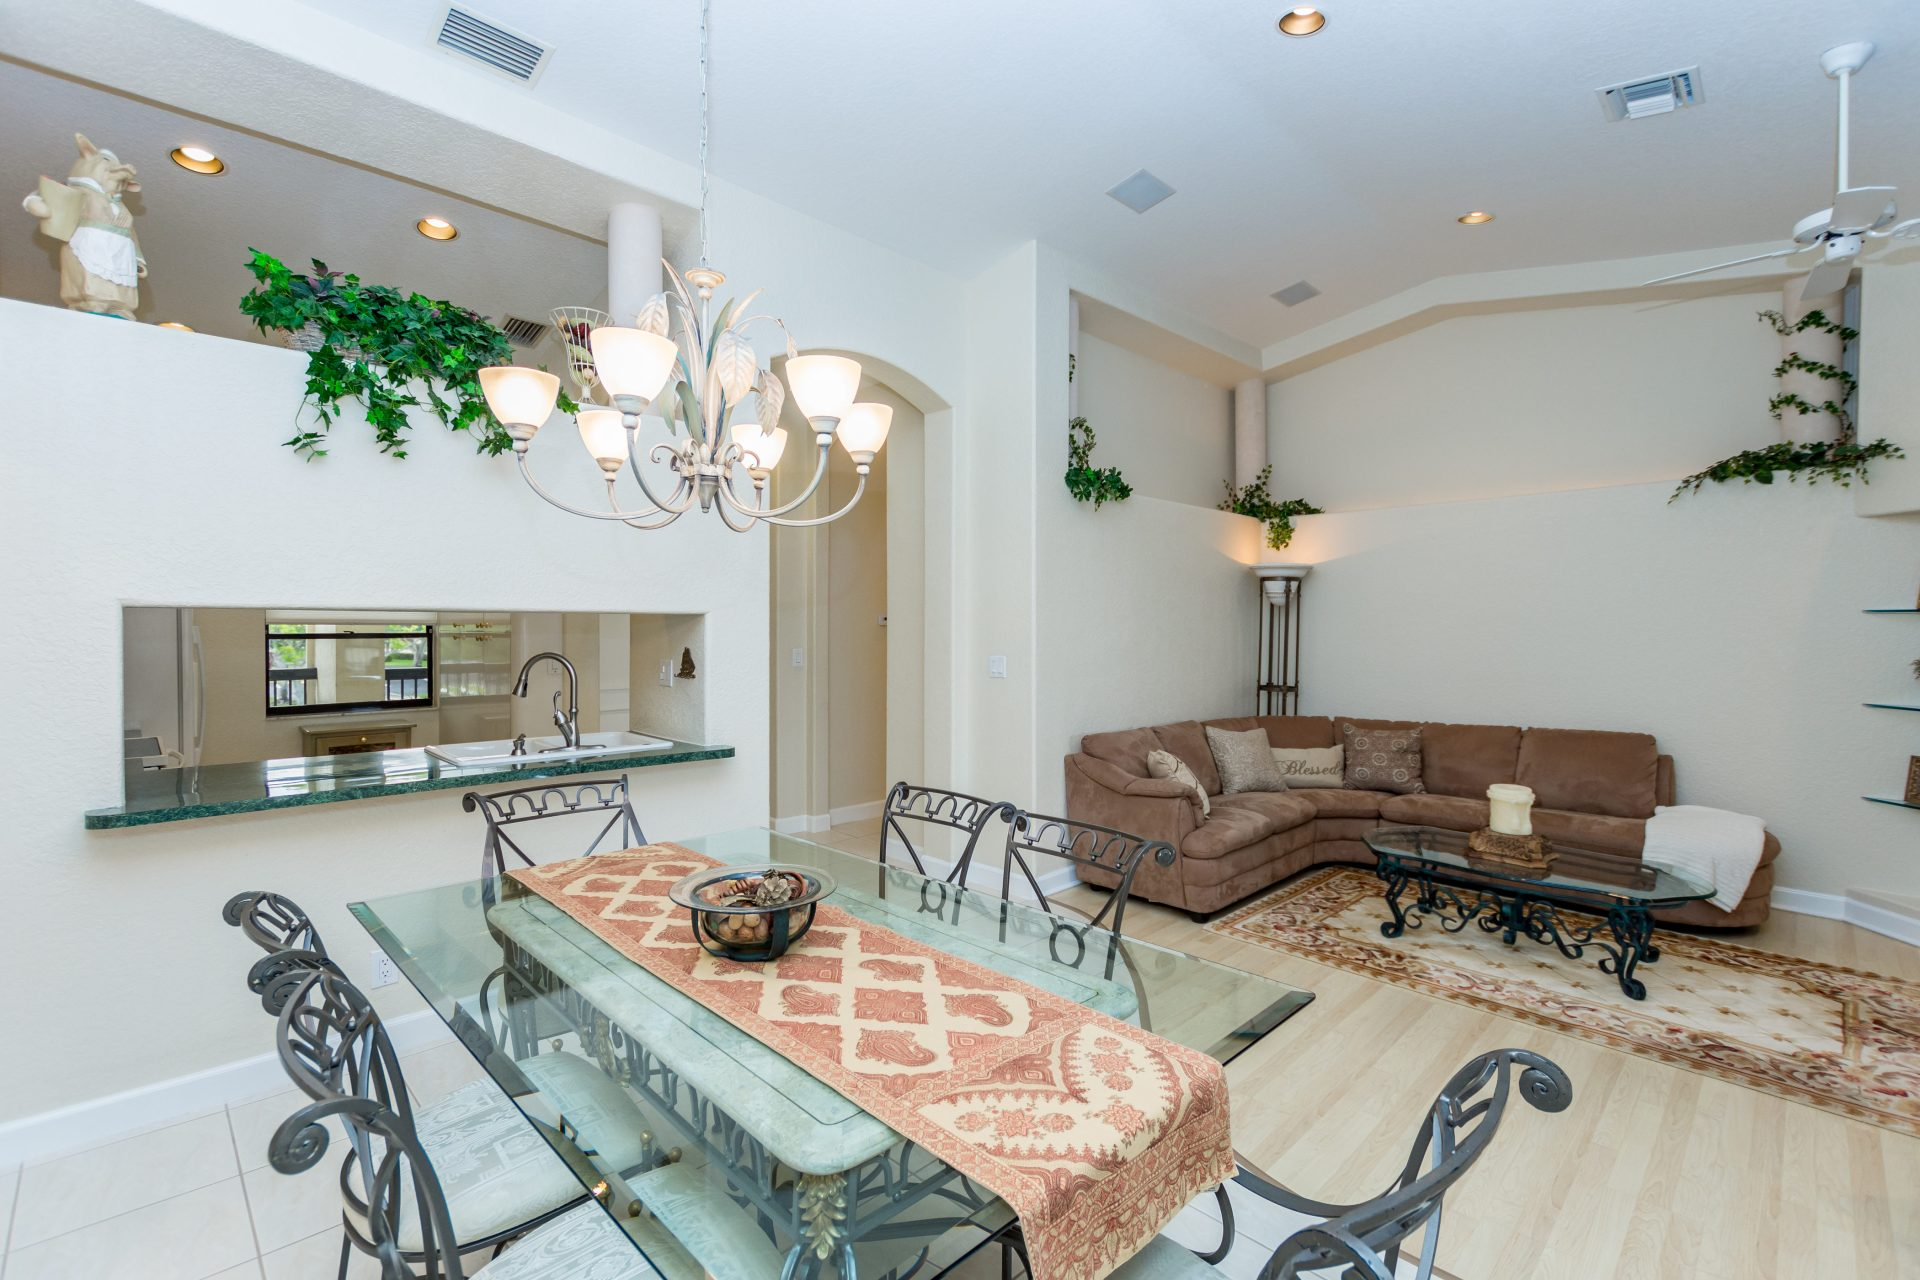 Immobilier Floride Investissement Plantation Condo One of A Kind with high ceilings